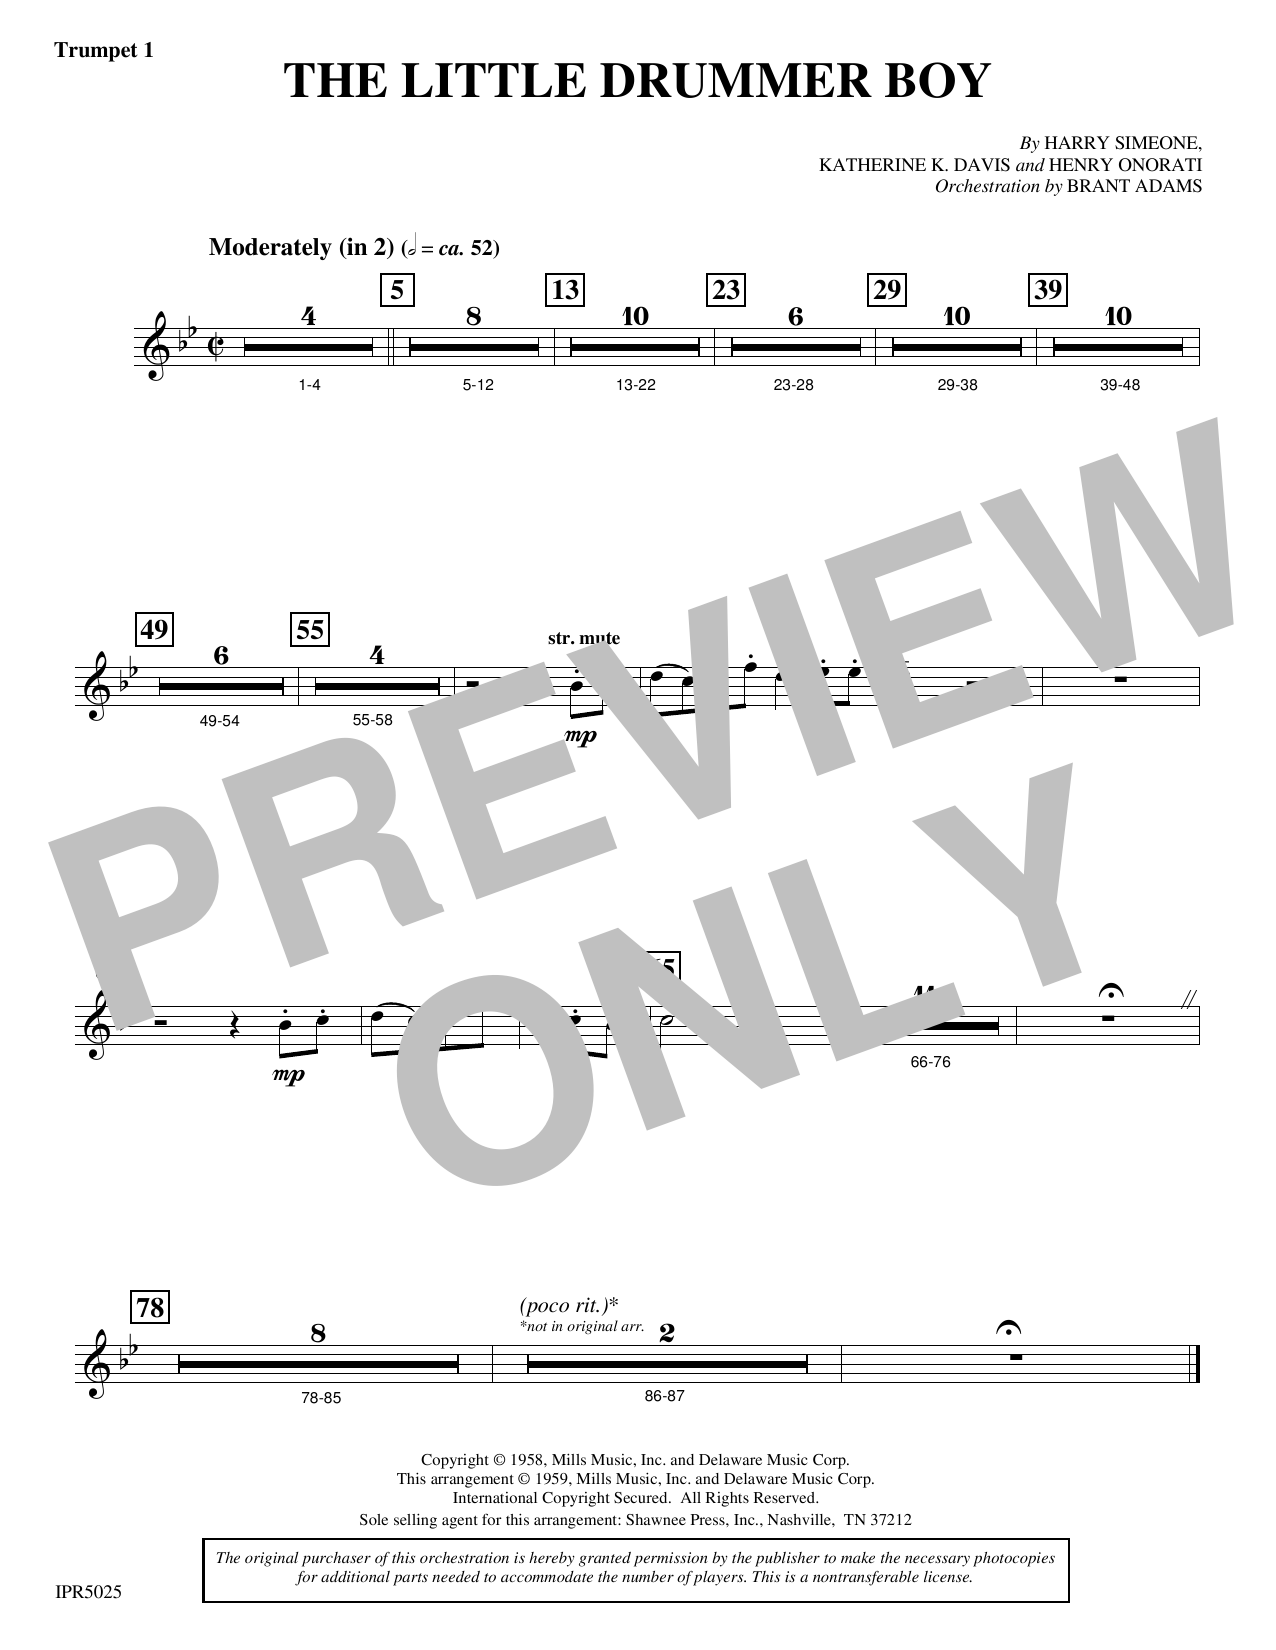 Harry Simeone The Little Drummer Boy - Trumpet 1 sheet music notes and chords. Download Printable PDF.